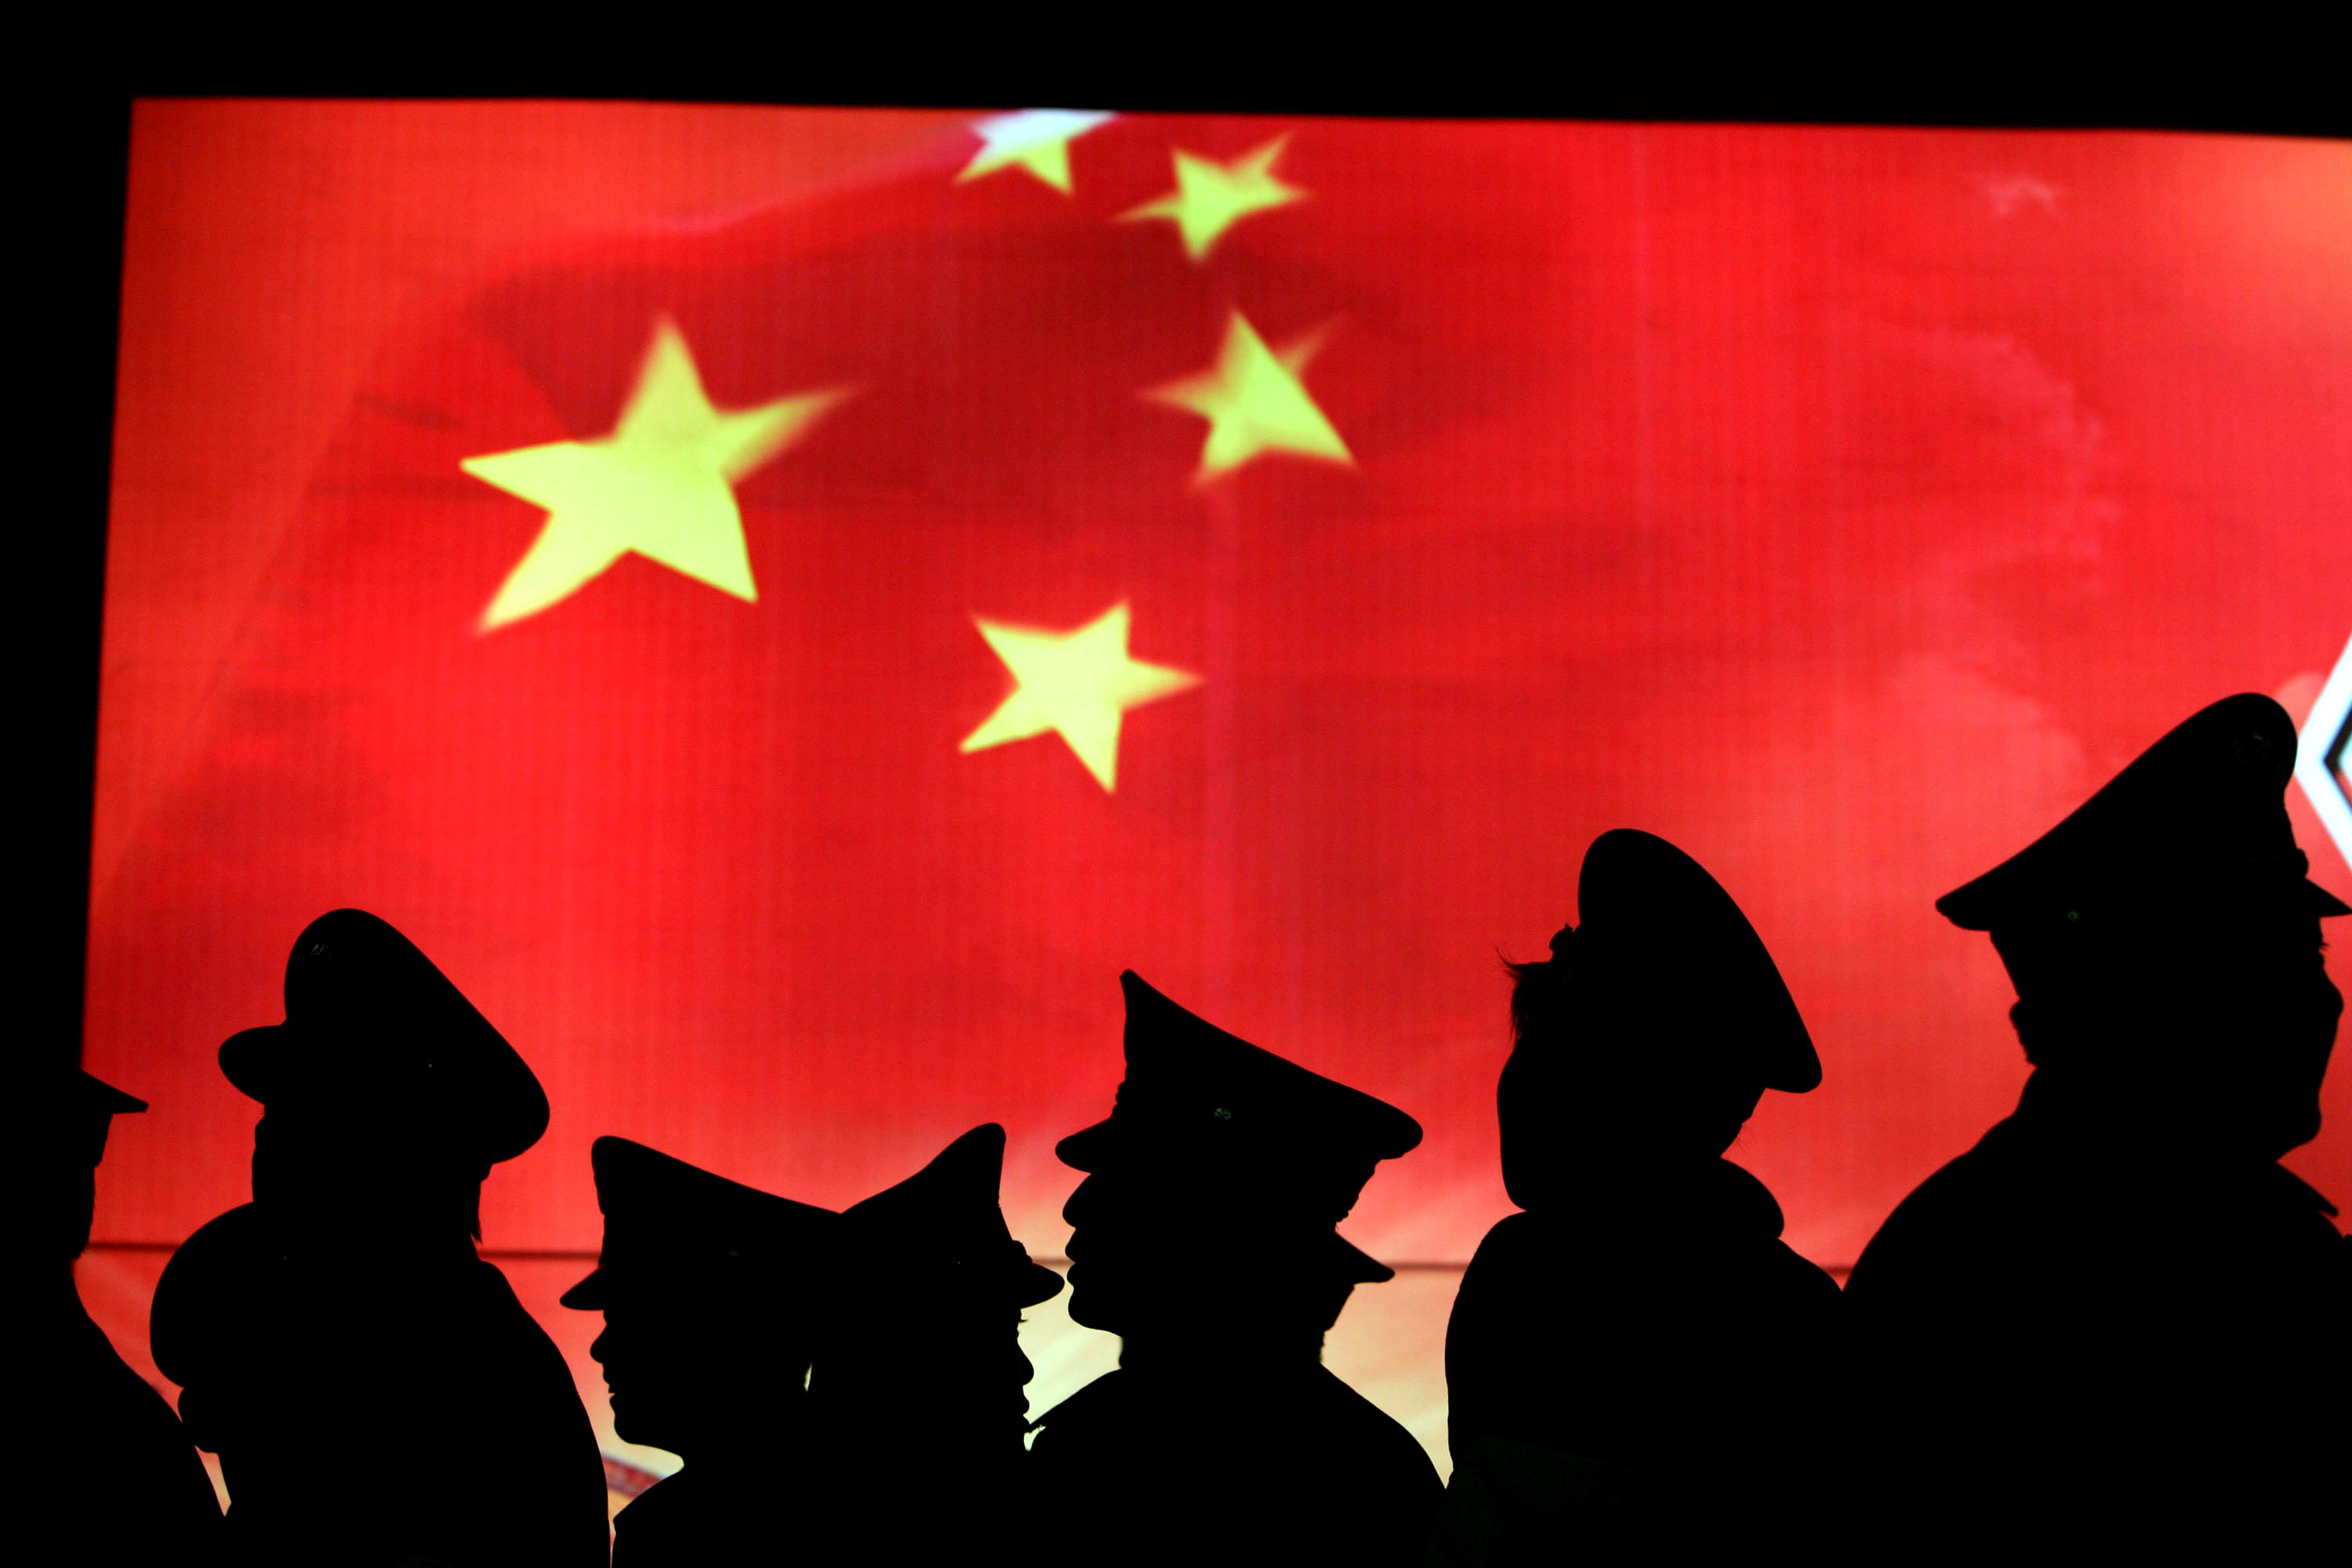 the great firewall of china and the issue of government censorship